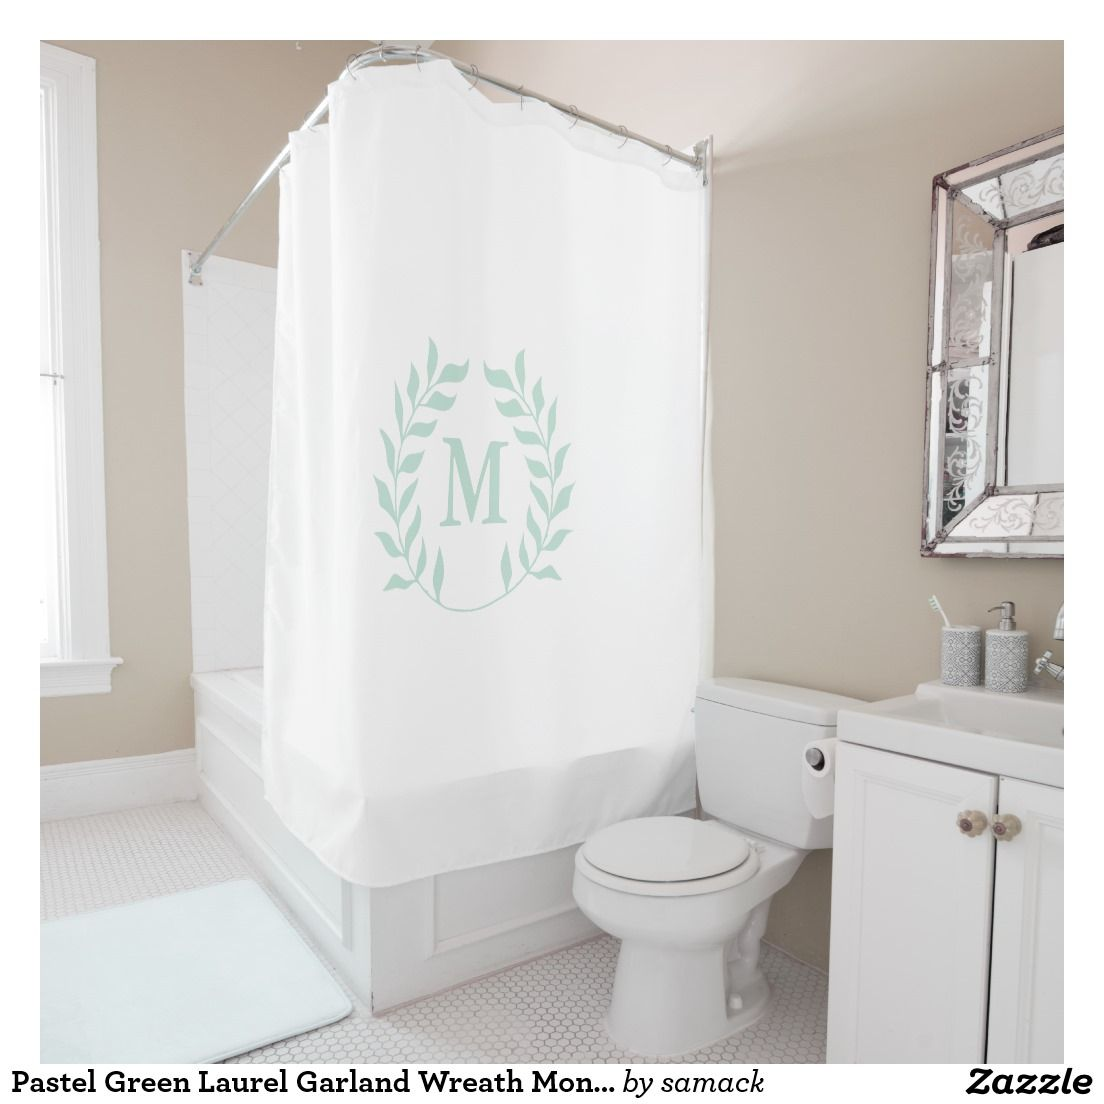 Pastel Green Laurel Garland Wreath Monogram Shower Curtain ...